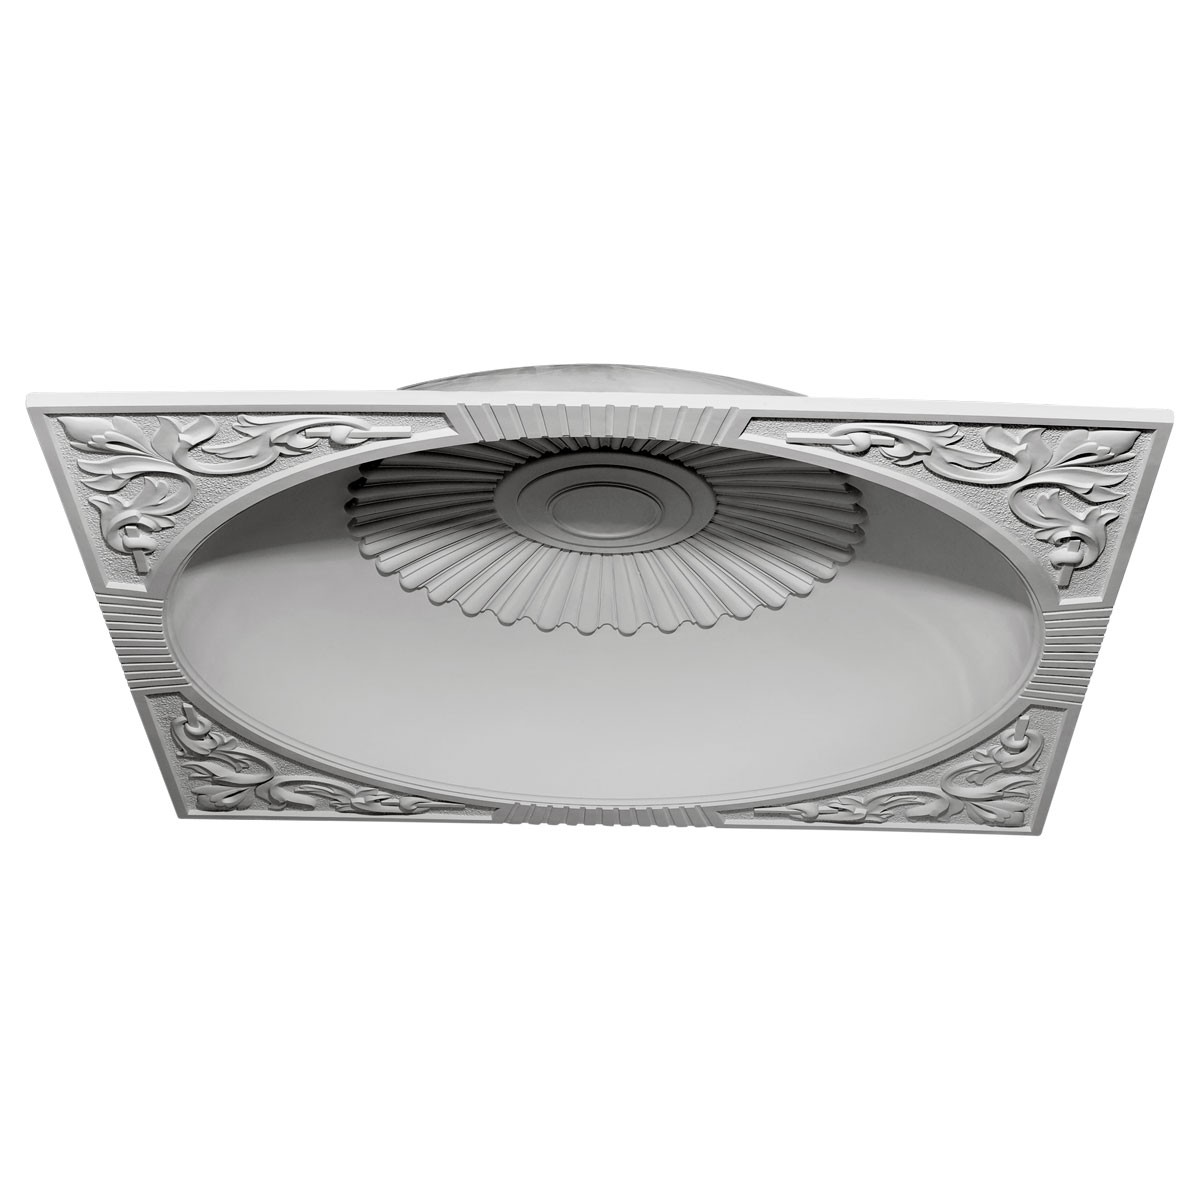 """EM-DOME59SU - 59""""OD x 51 1/8""""ID x 9""""D Sussex Recessed Mount Ceiling Dome (55"""" Diameter x 9 3/4""""D Rough Opening)"""